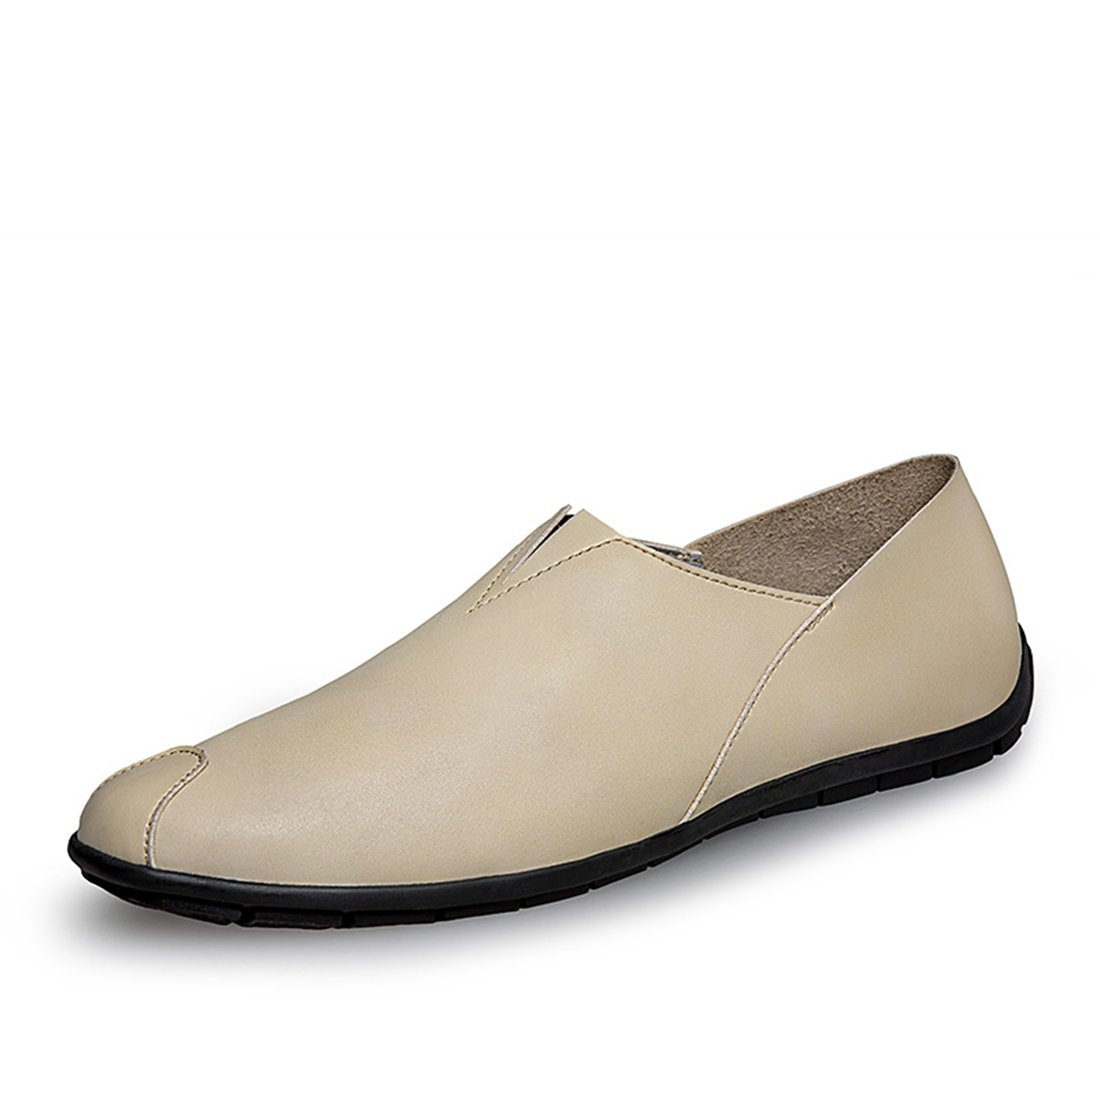 Boy's Men's Solide Slip-On Synthetic Basic Loafers